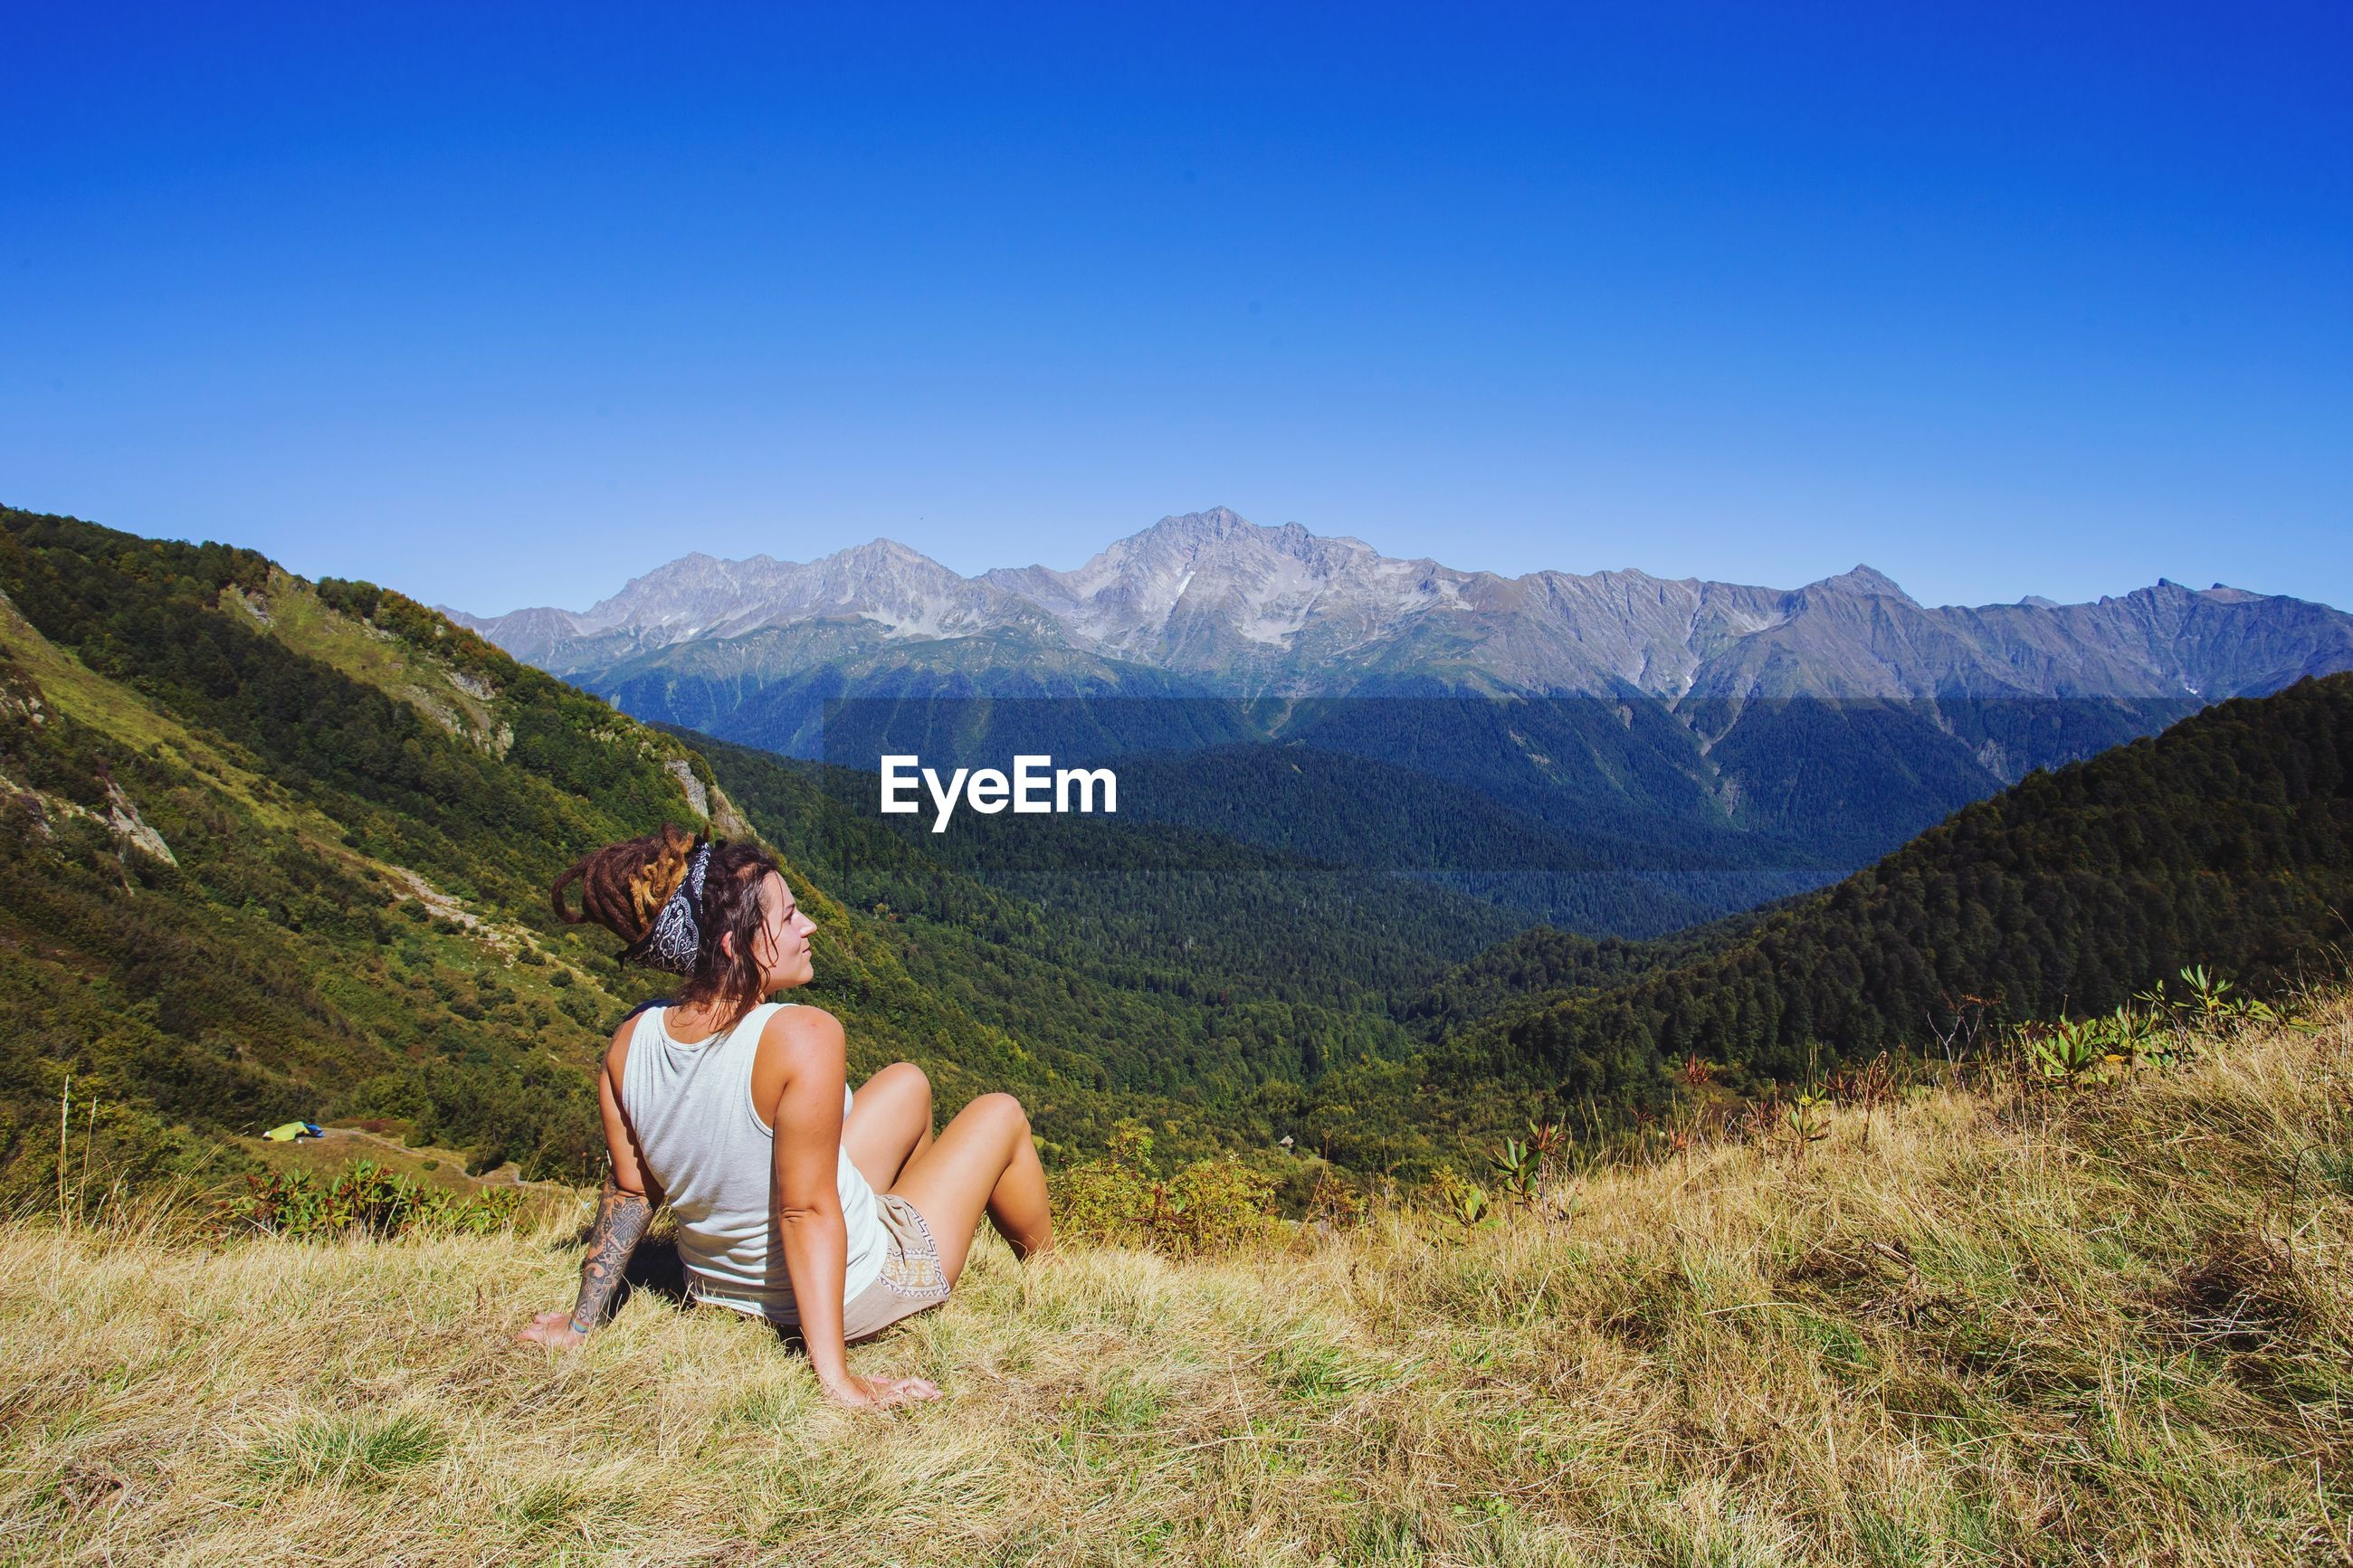 Rear view of woman sitting on mountain against clear blue sky